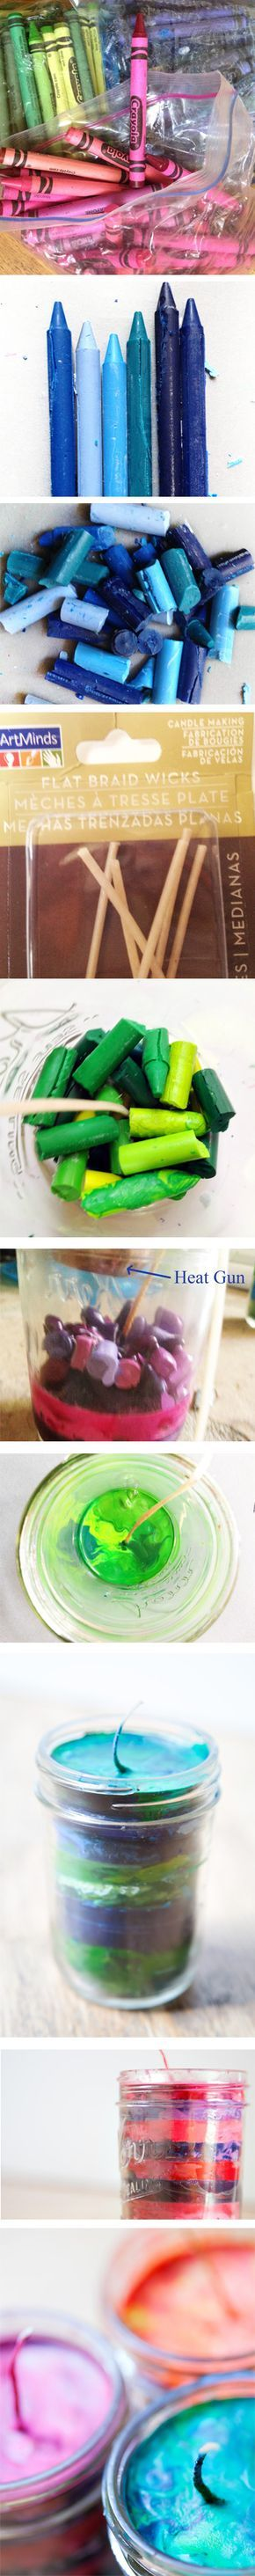 great tutorial on how to make striped crayon candles--pretty!   Now I know what to do with all my old n broken crayons. It also gives me a reason to get new Crayola Crayons. Like I NEED an excuse.  Nothing like the smell of a box of Crayola Crayons :)